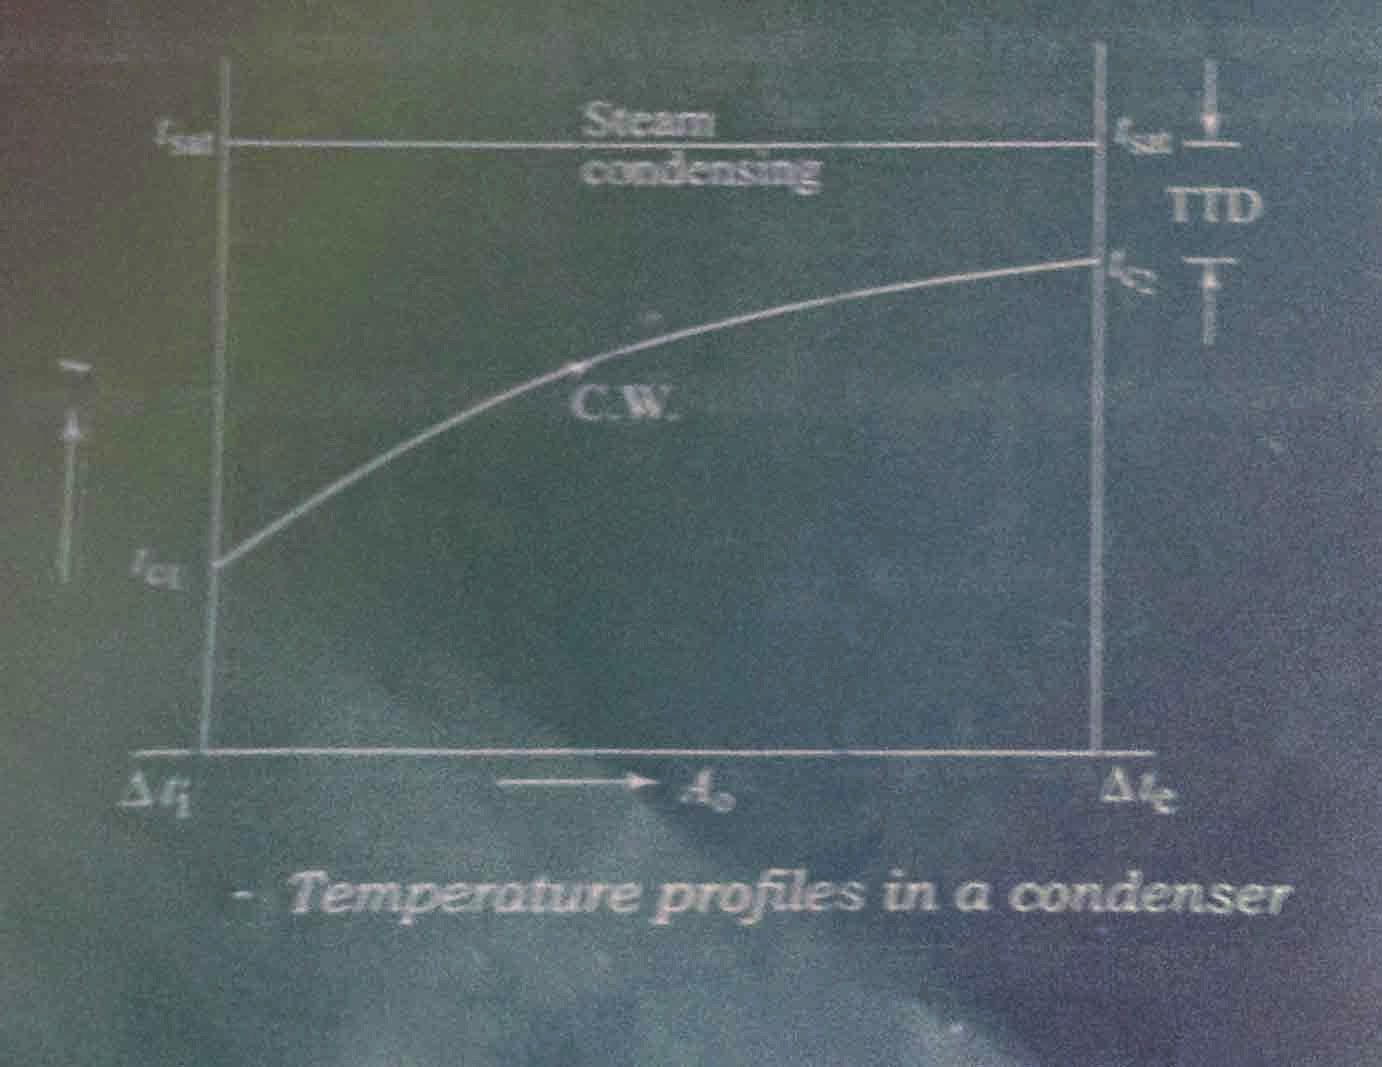 Temperature profile of a condenser